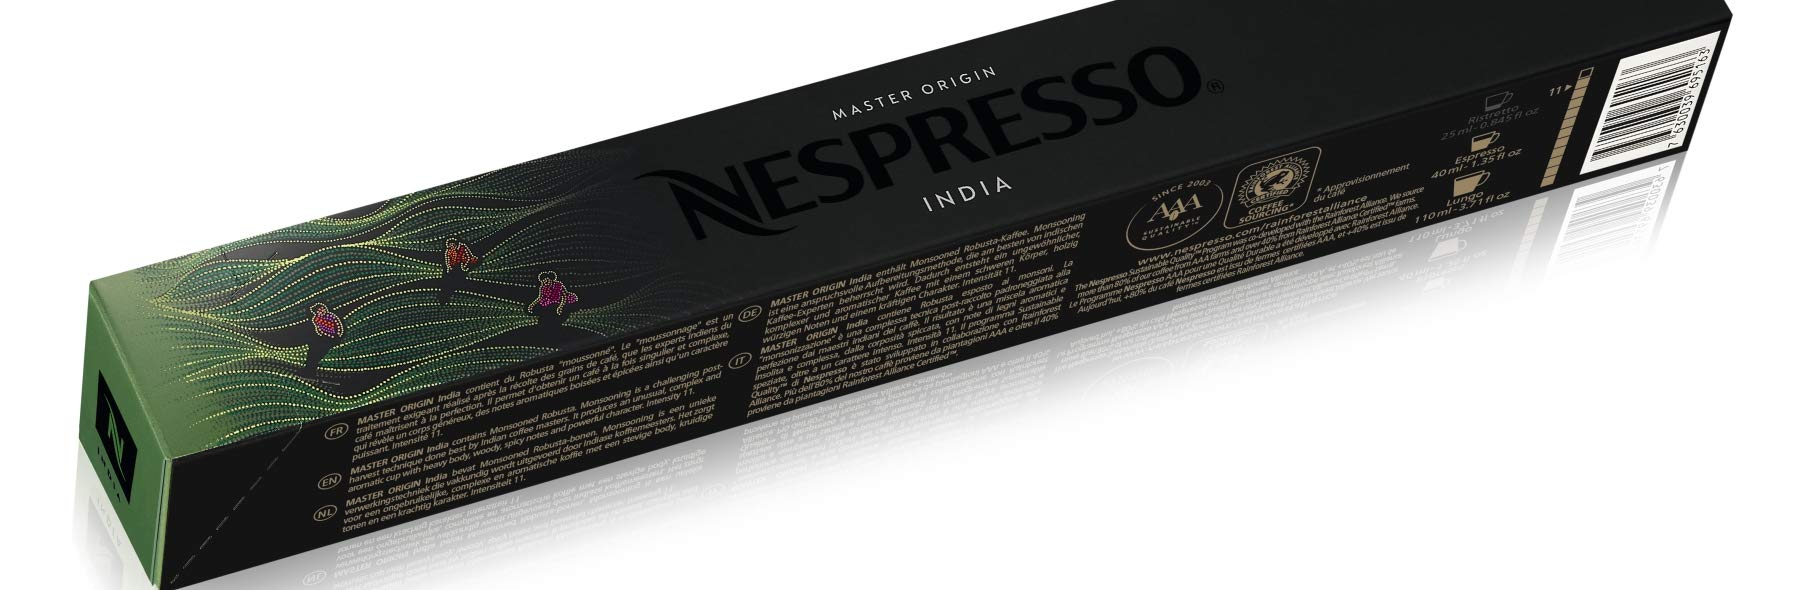 Nespresso Original Master Origin coffee pods and capsules (a intense, spicy notes, woody notes coffee with aromas of spices and tobacco)